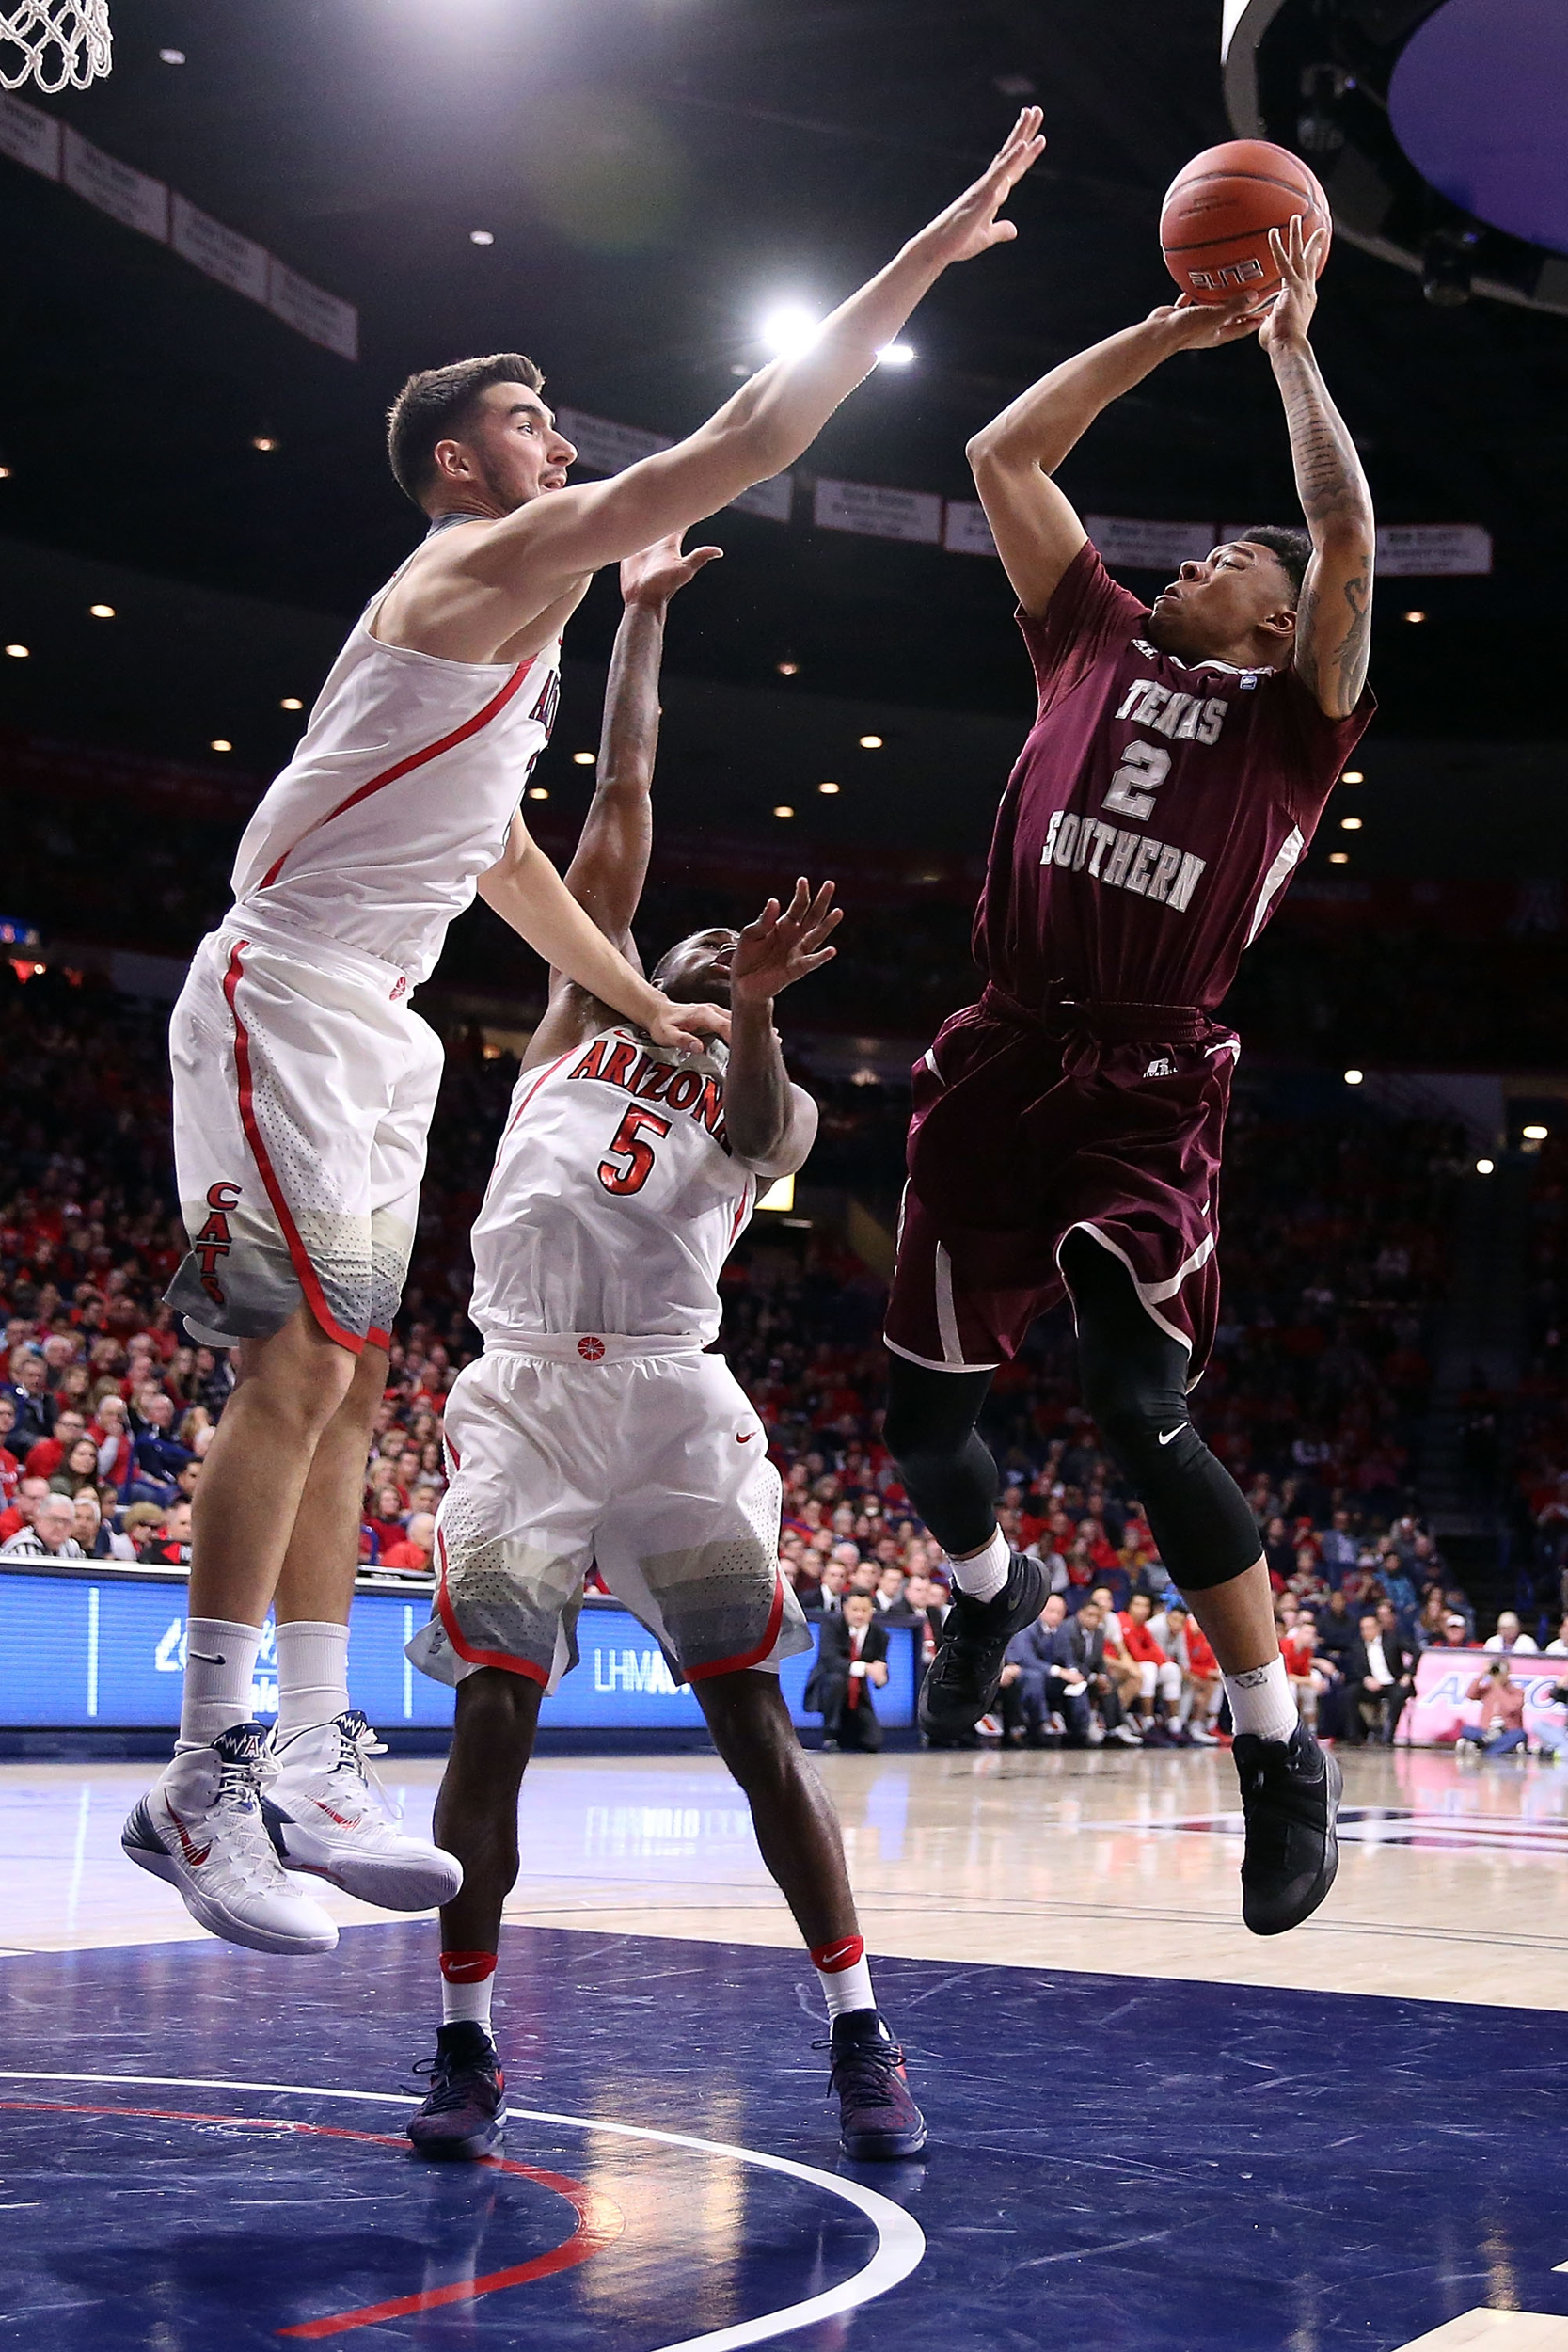 Zach Lofton #2 of the Texas Southern Tigers shoots over Dusan Ristic #14 and Kadeem Allen #5 of the Arizona Wildcats during the second half of the NCAA college basketball game at McKale Center on November 30, 2016 in Tucson, Arizona. Arizona won 85-63.